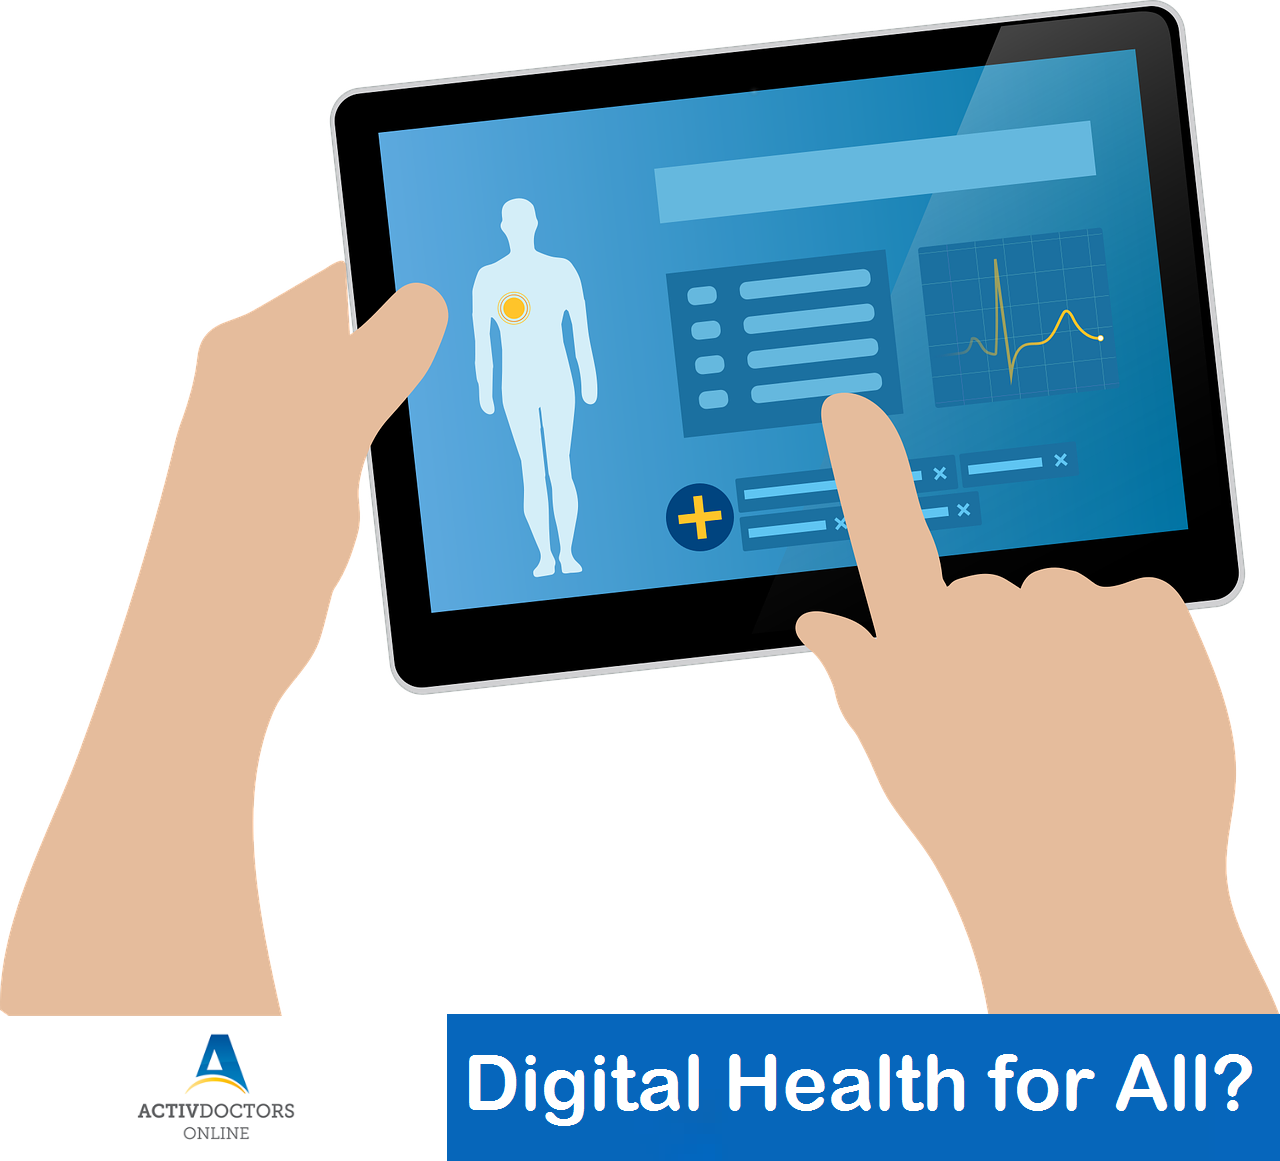 Digital Health for All?